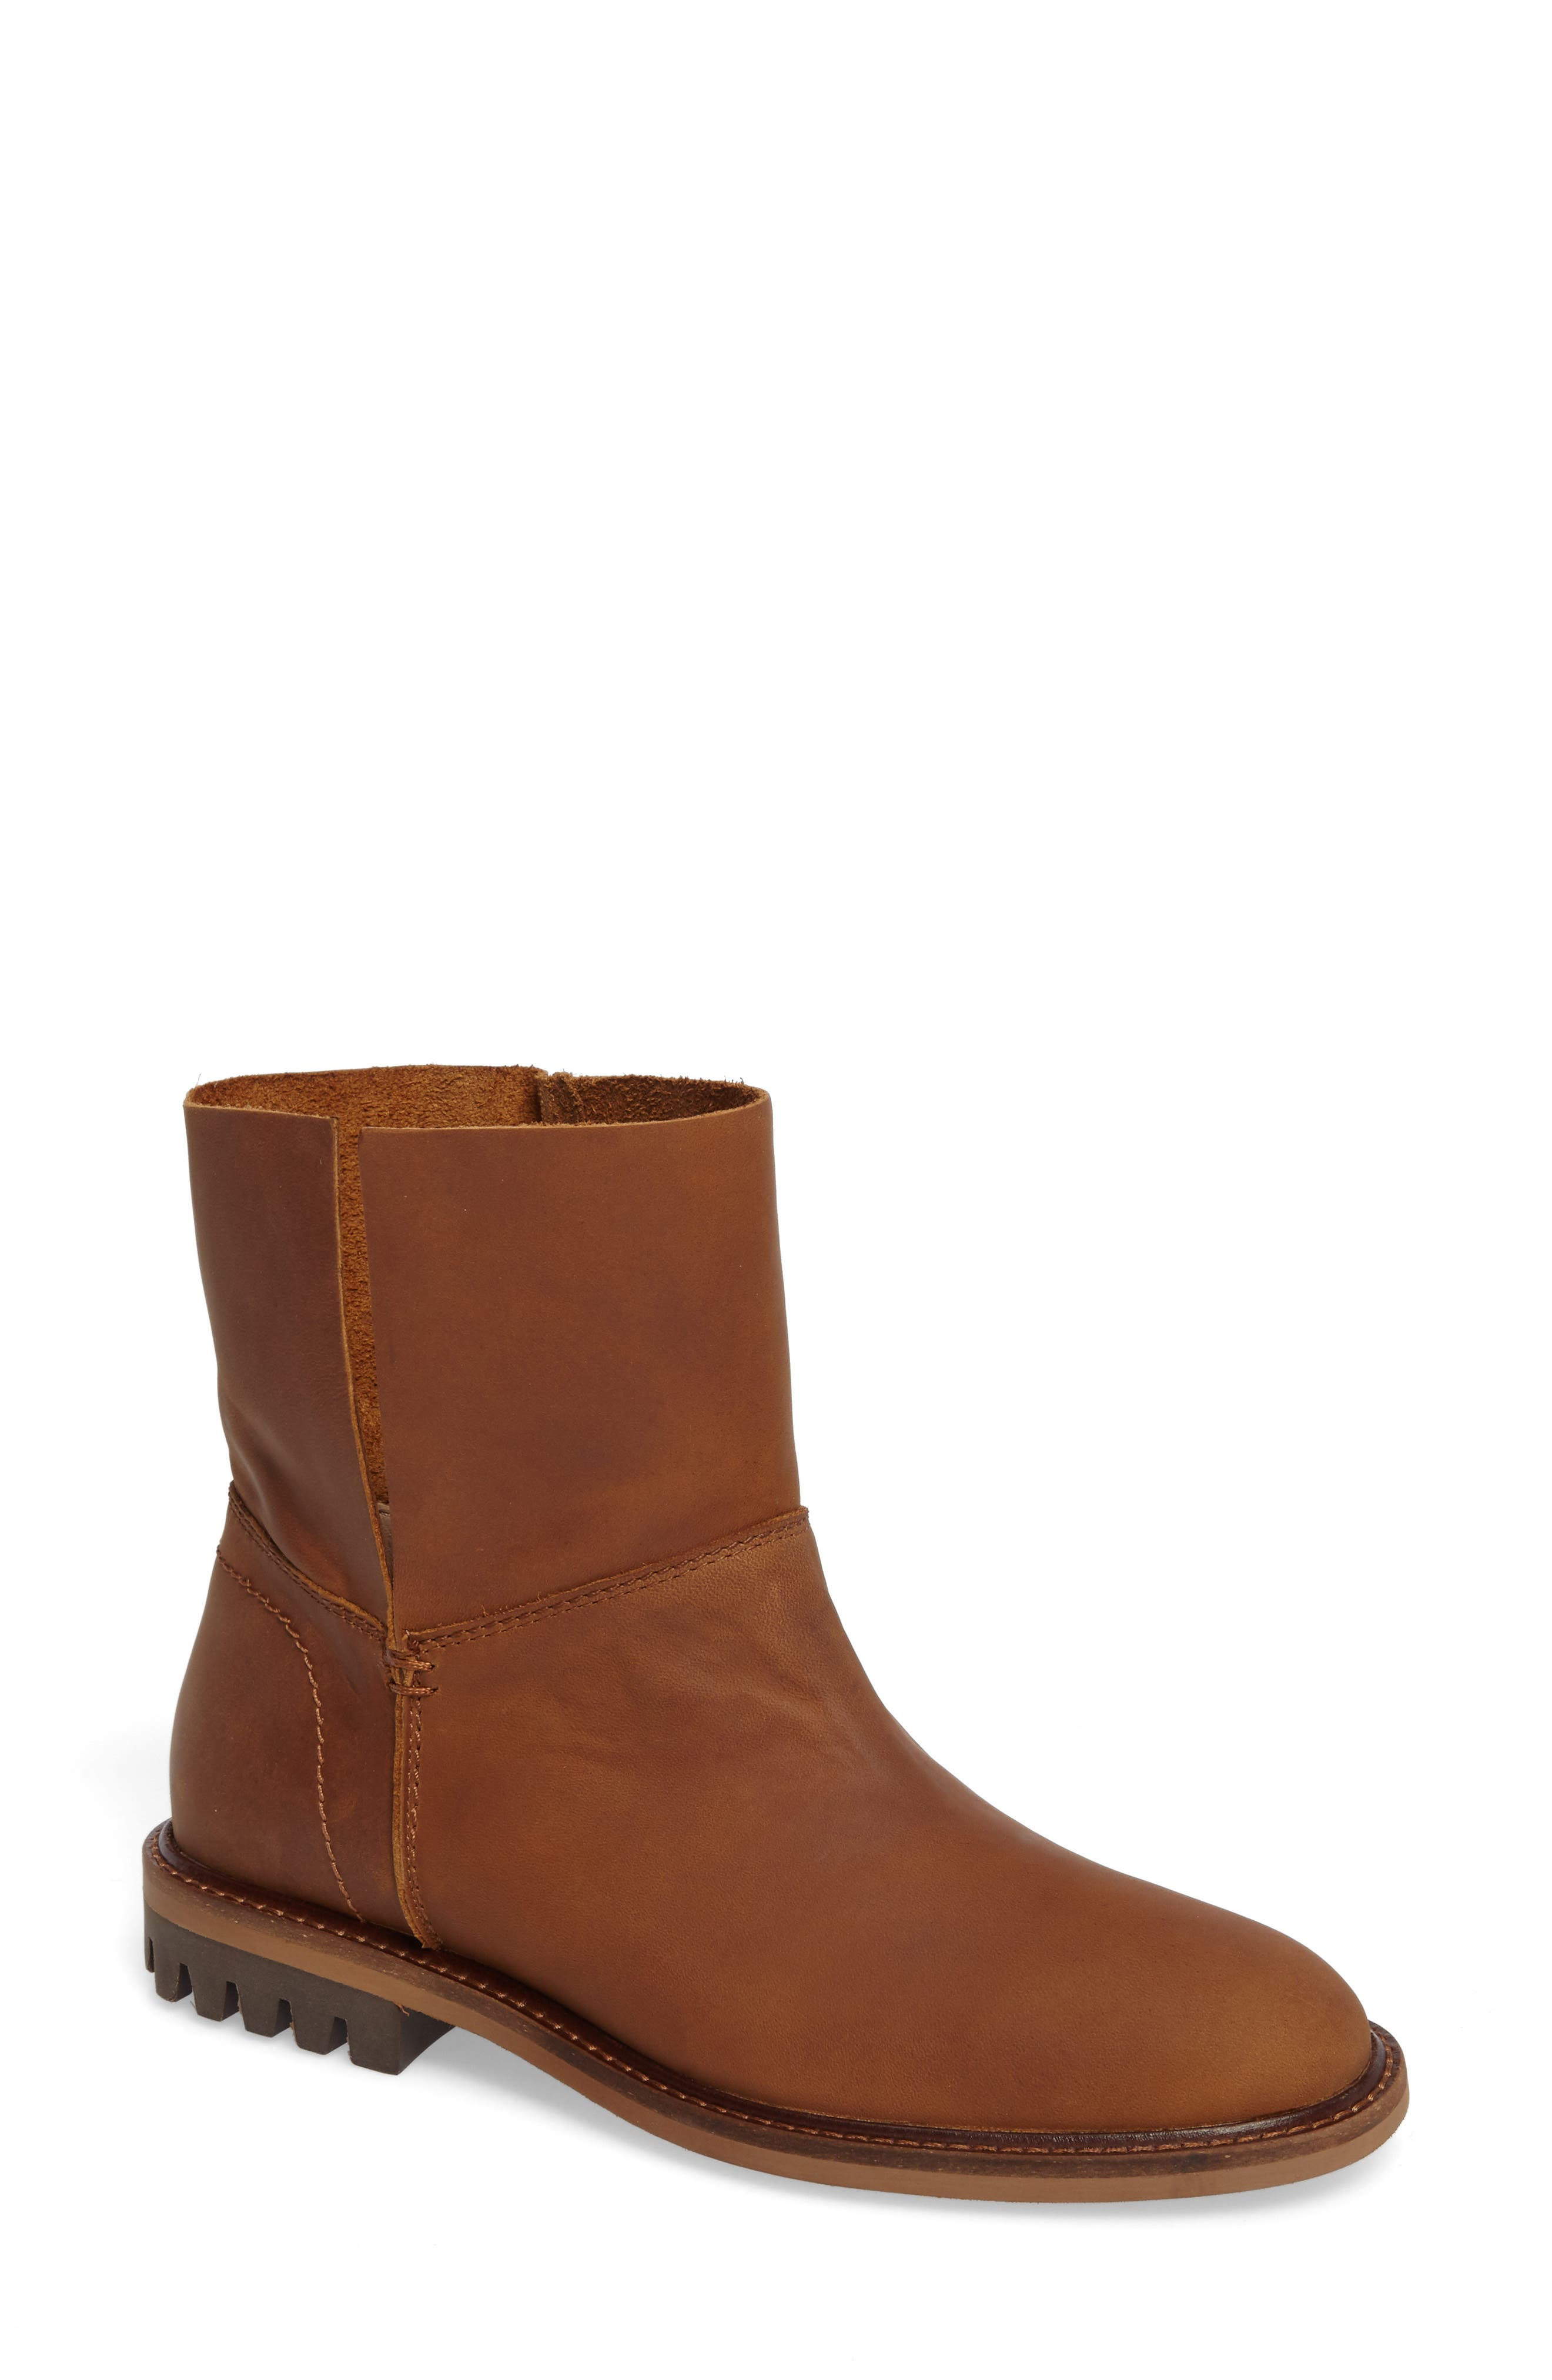 Kelsi Dagger Brooklyn Borough Boot (Women)